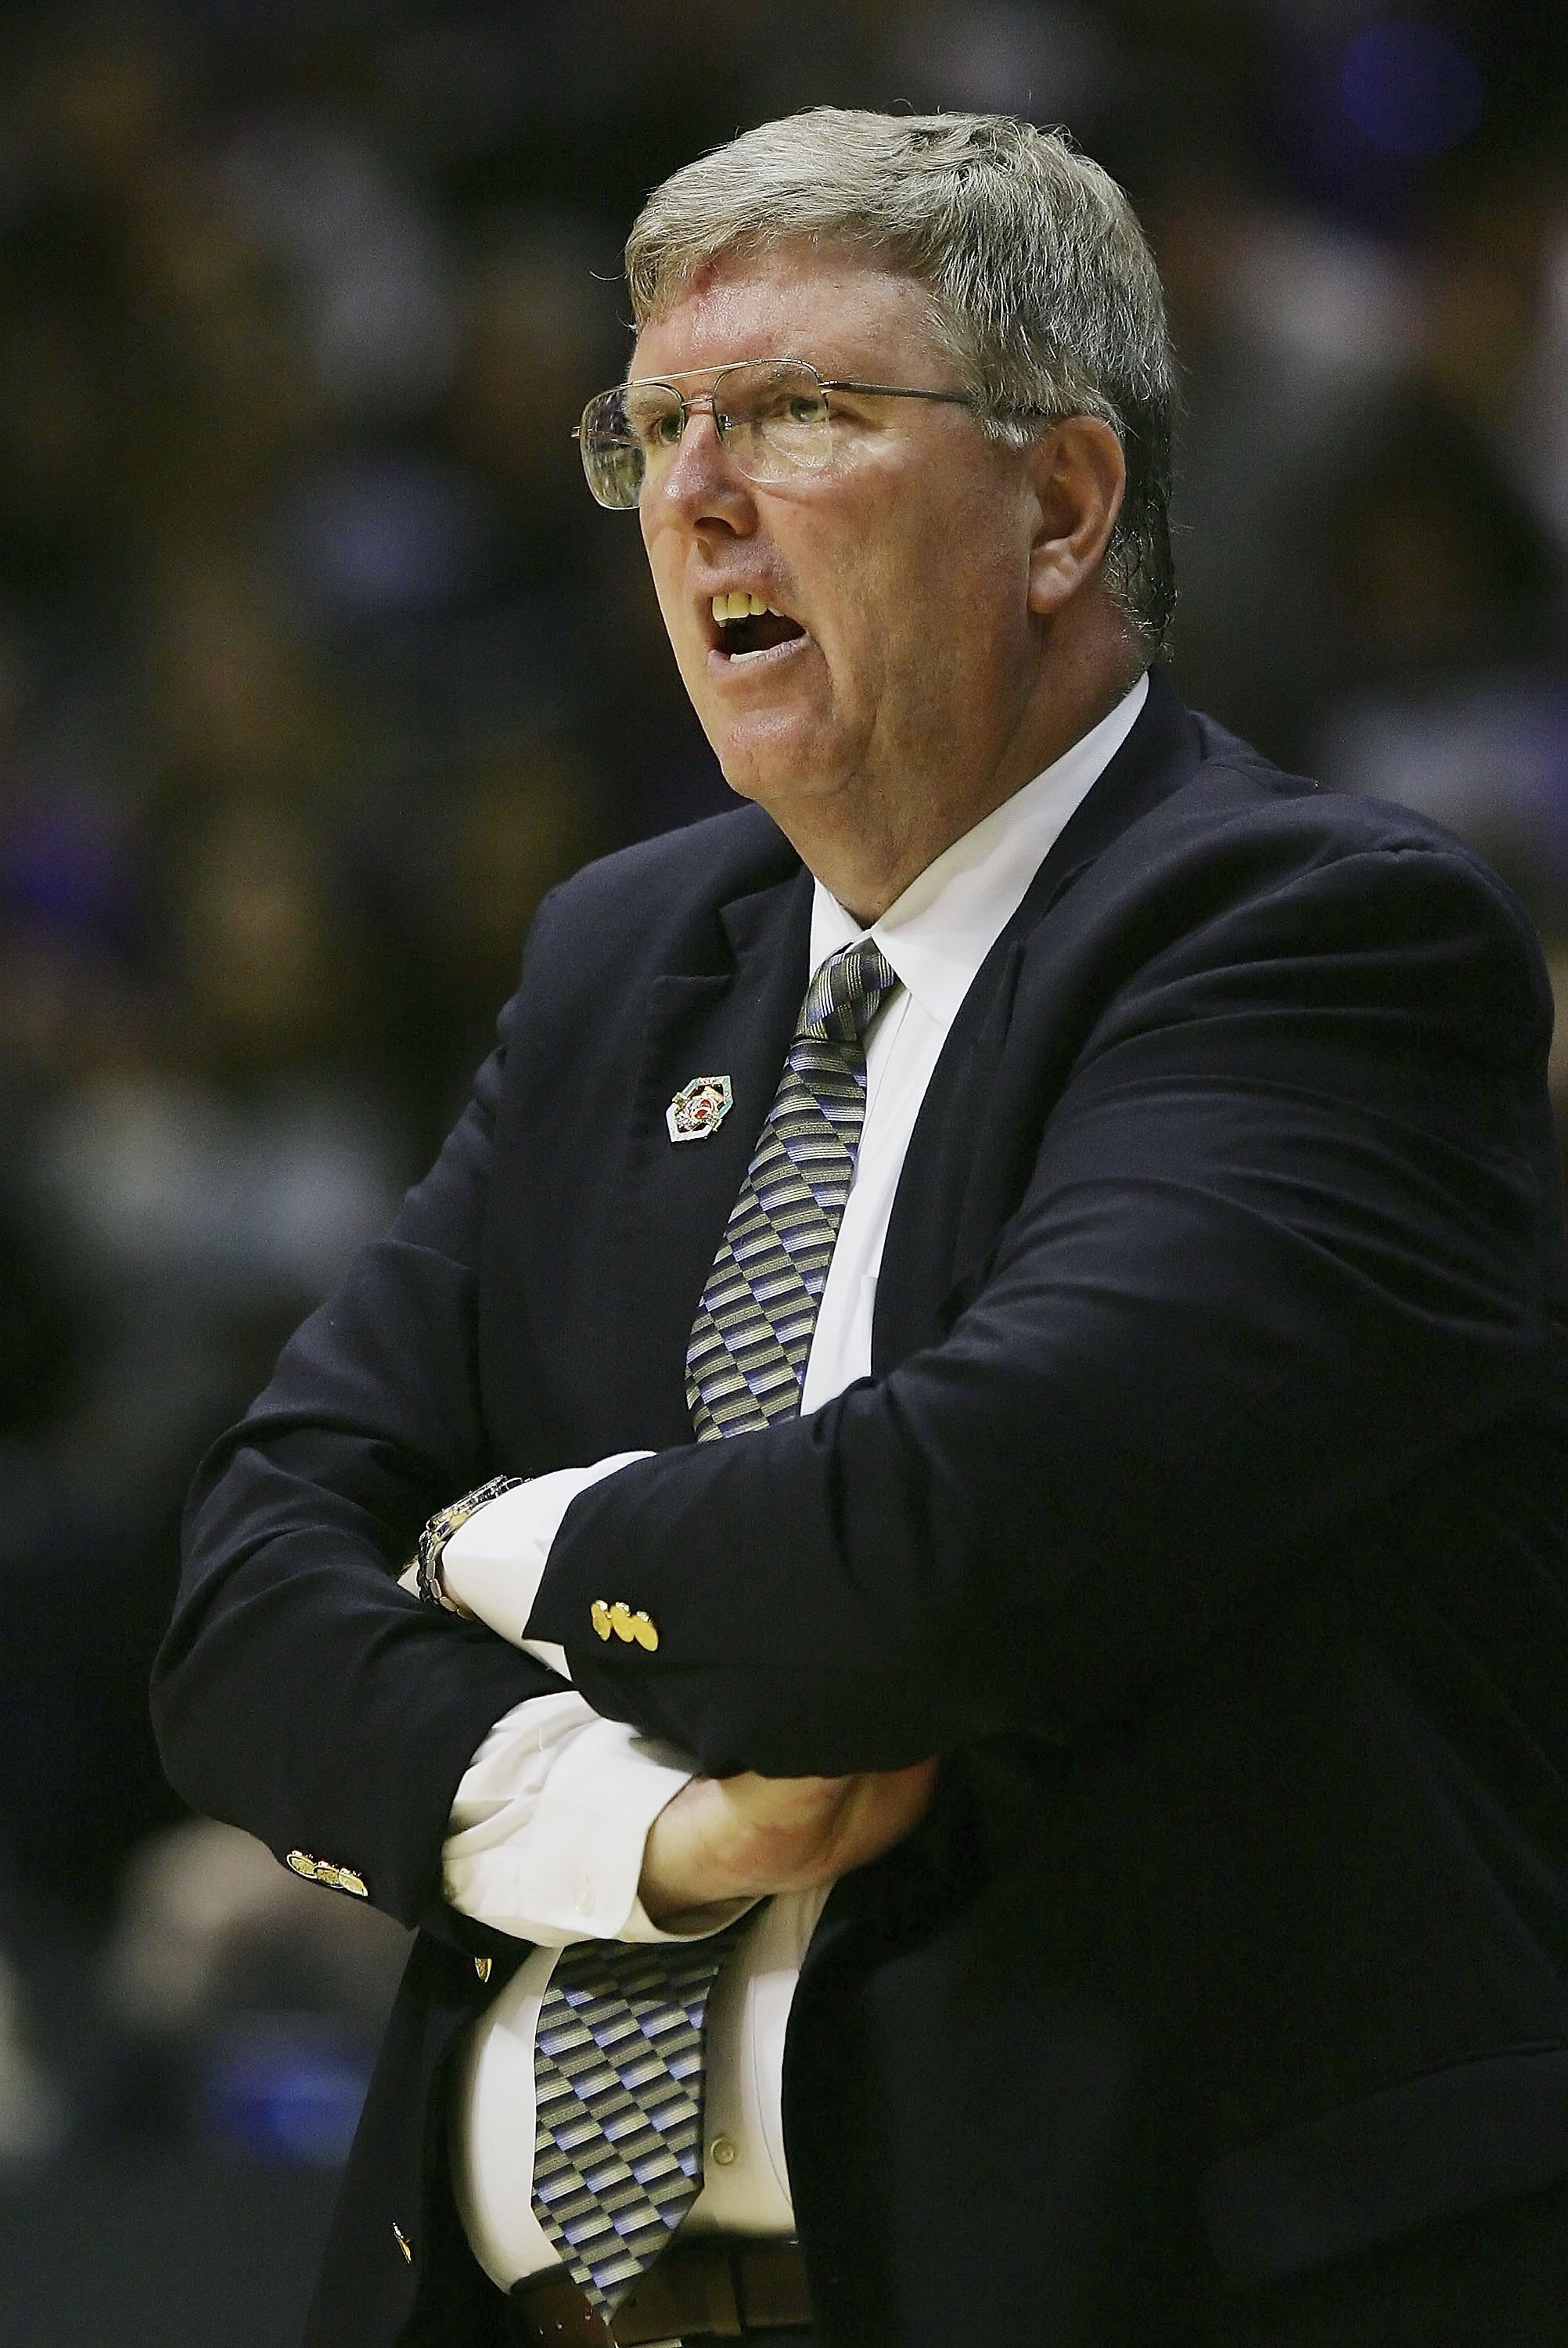 SAN DIEGO - MARCH 16:  Head Coach Stew Morrill of the Utah State Aggies reacts to a play during the game against the Washington Huskies at the first round of the NCAA Finals on March 16, 2006 at Cox Arena in San Diego, California.  (Photo by Lisa Blumenfe